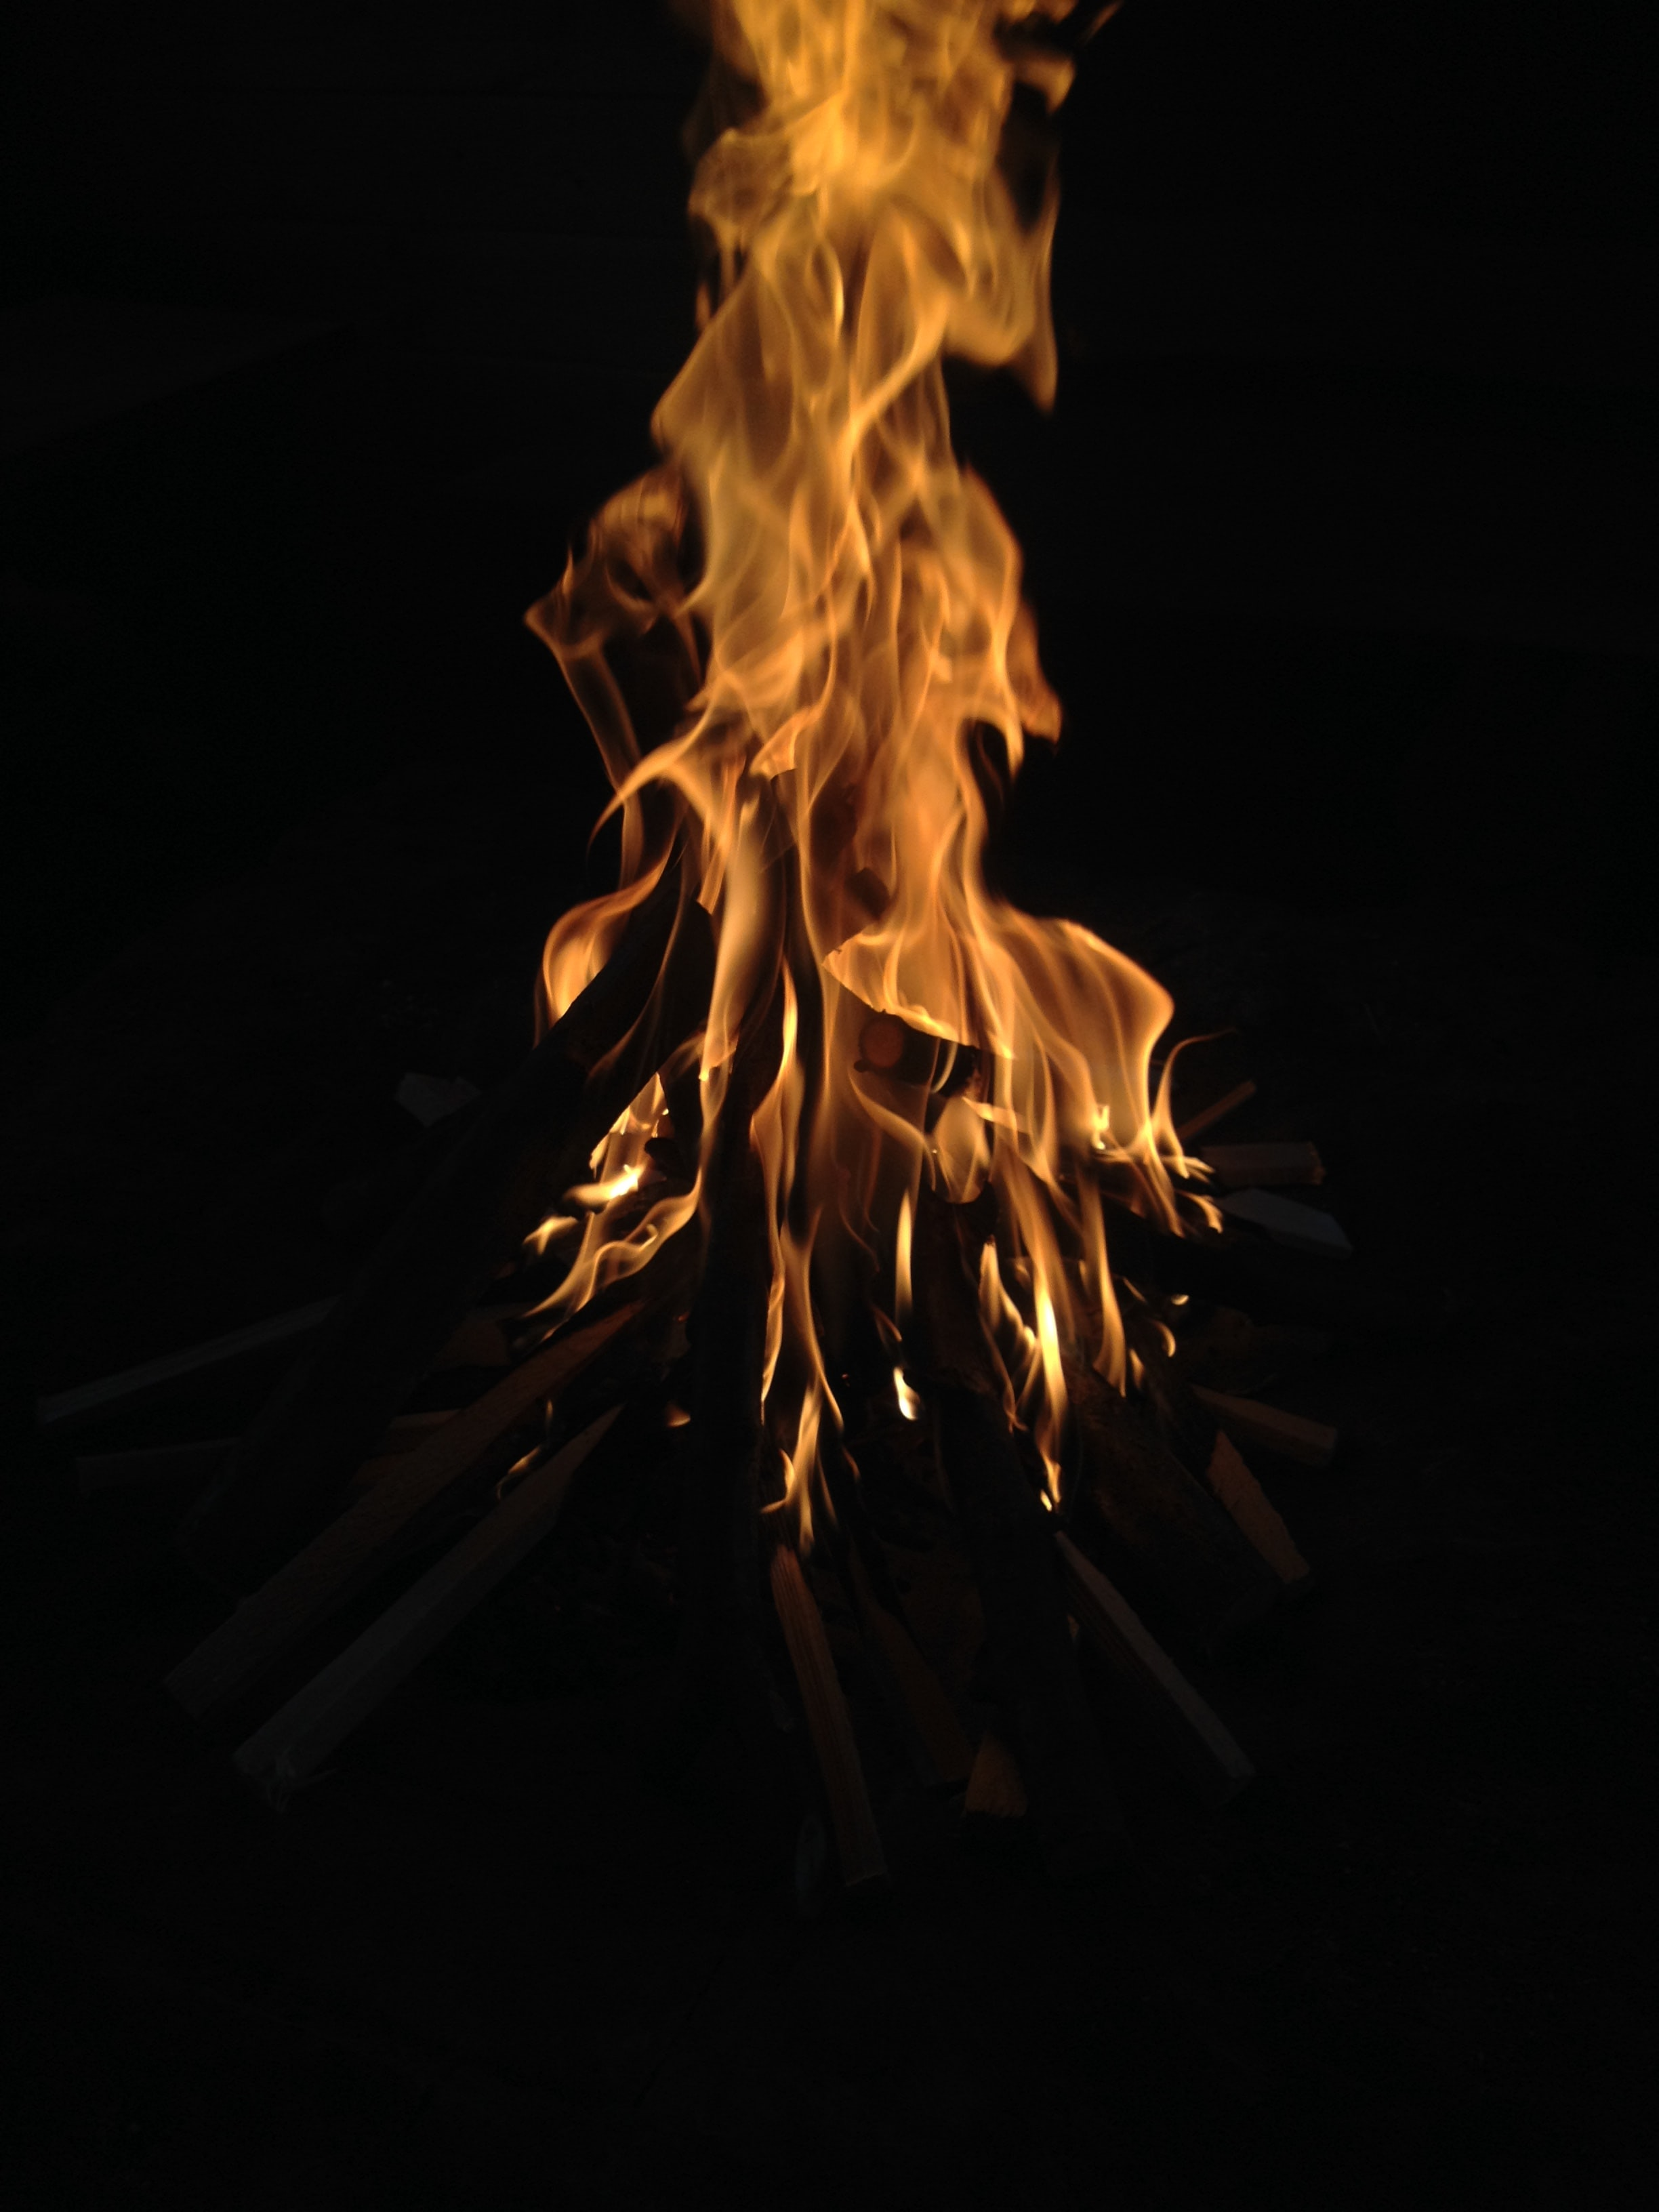 bonfire in dark place